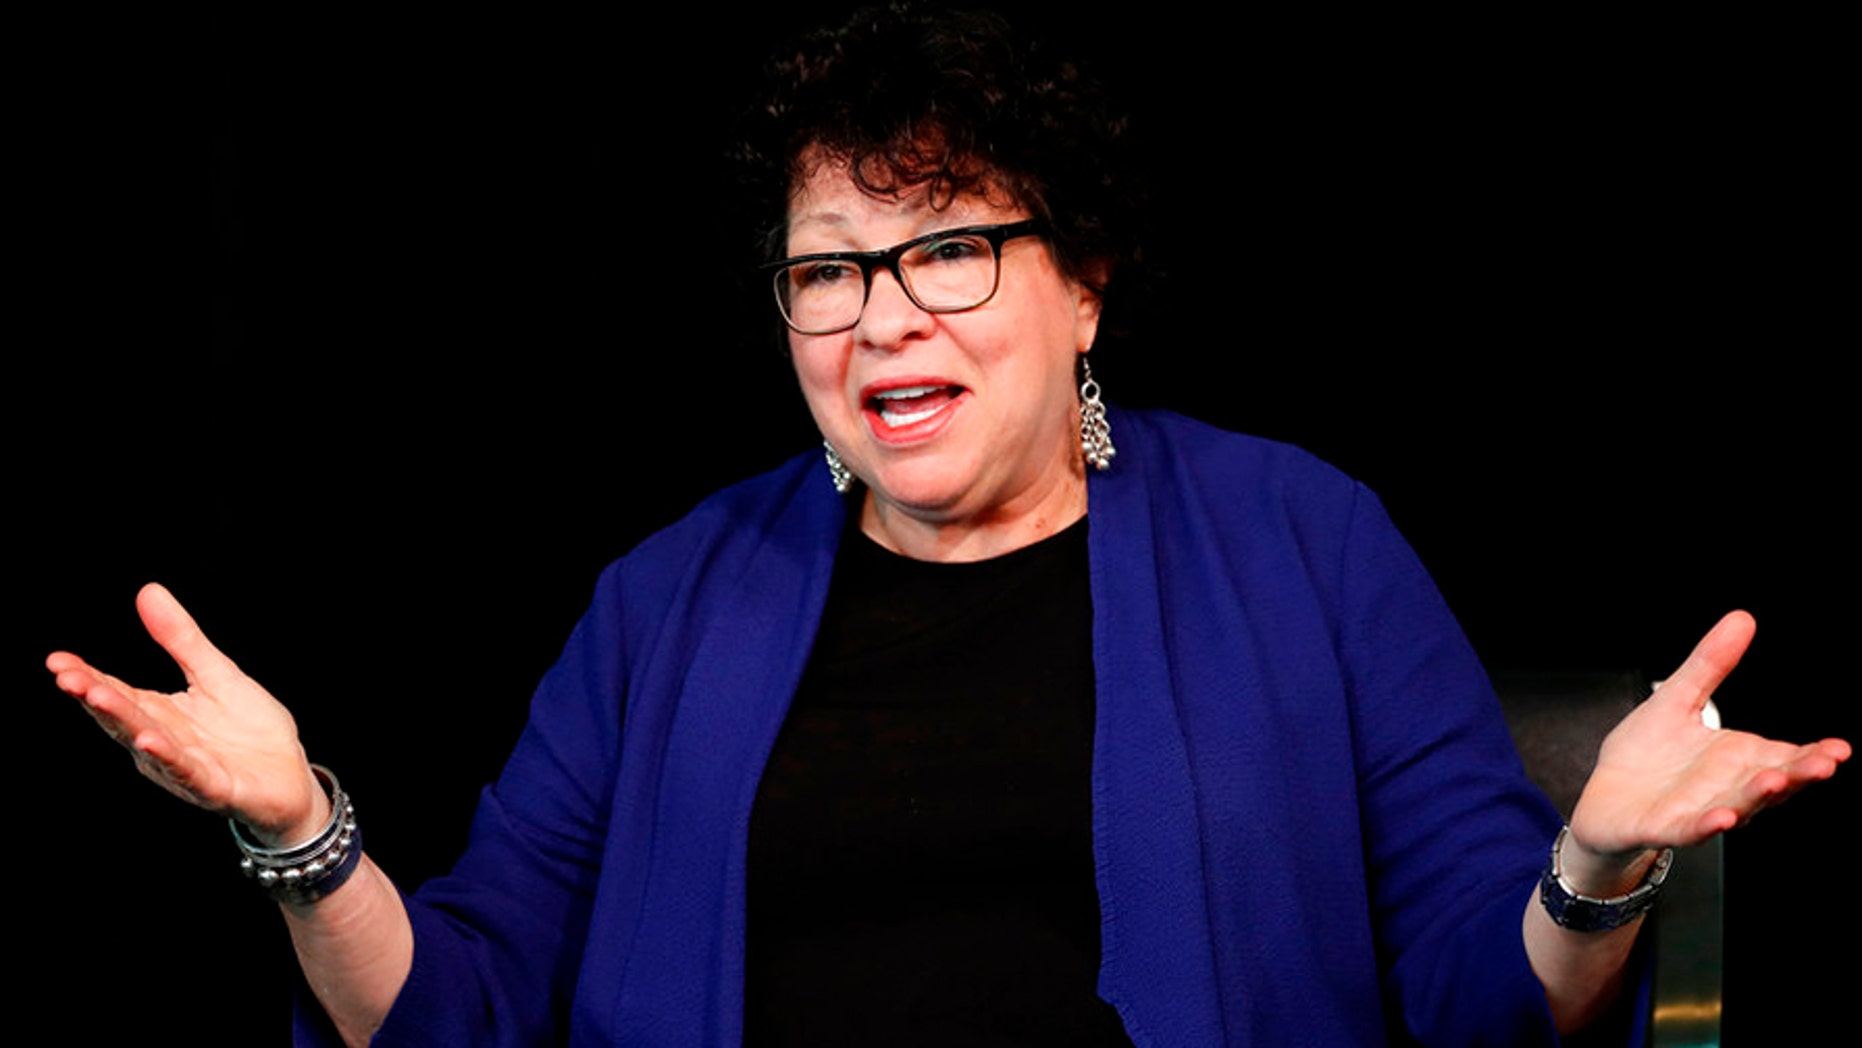 Justice Sotomayor broke her shoulder in a fall at home, the Supreme Court announced Tuesday.